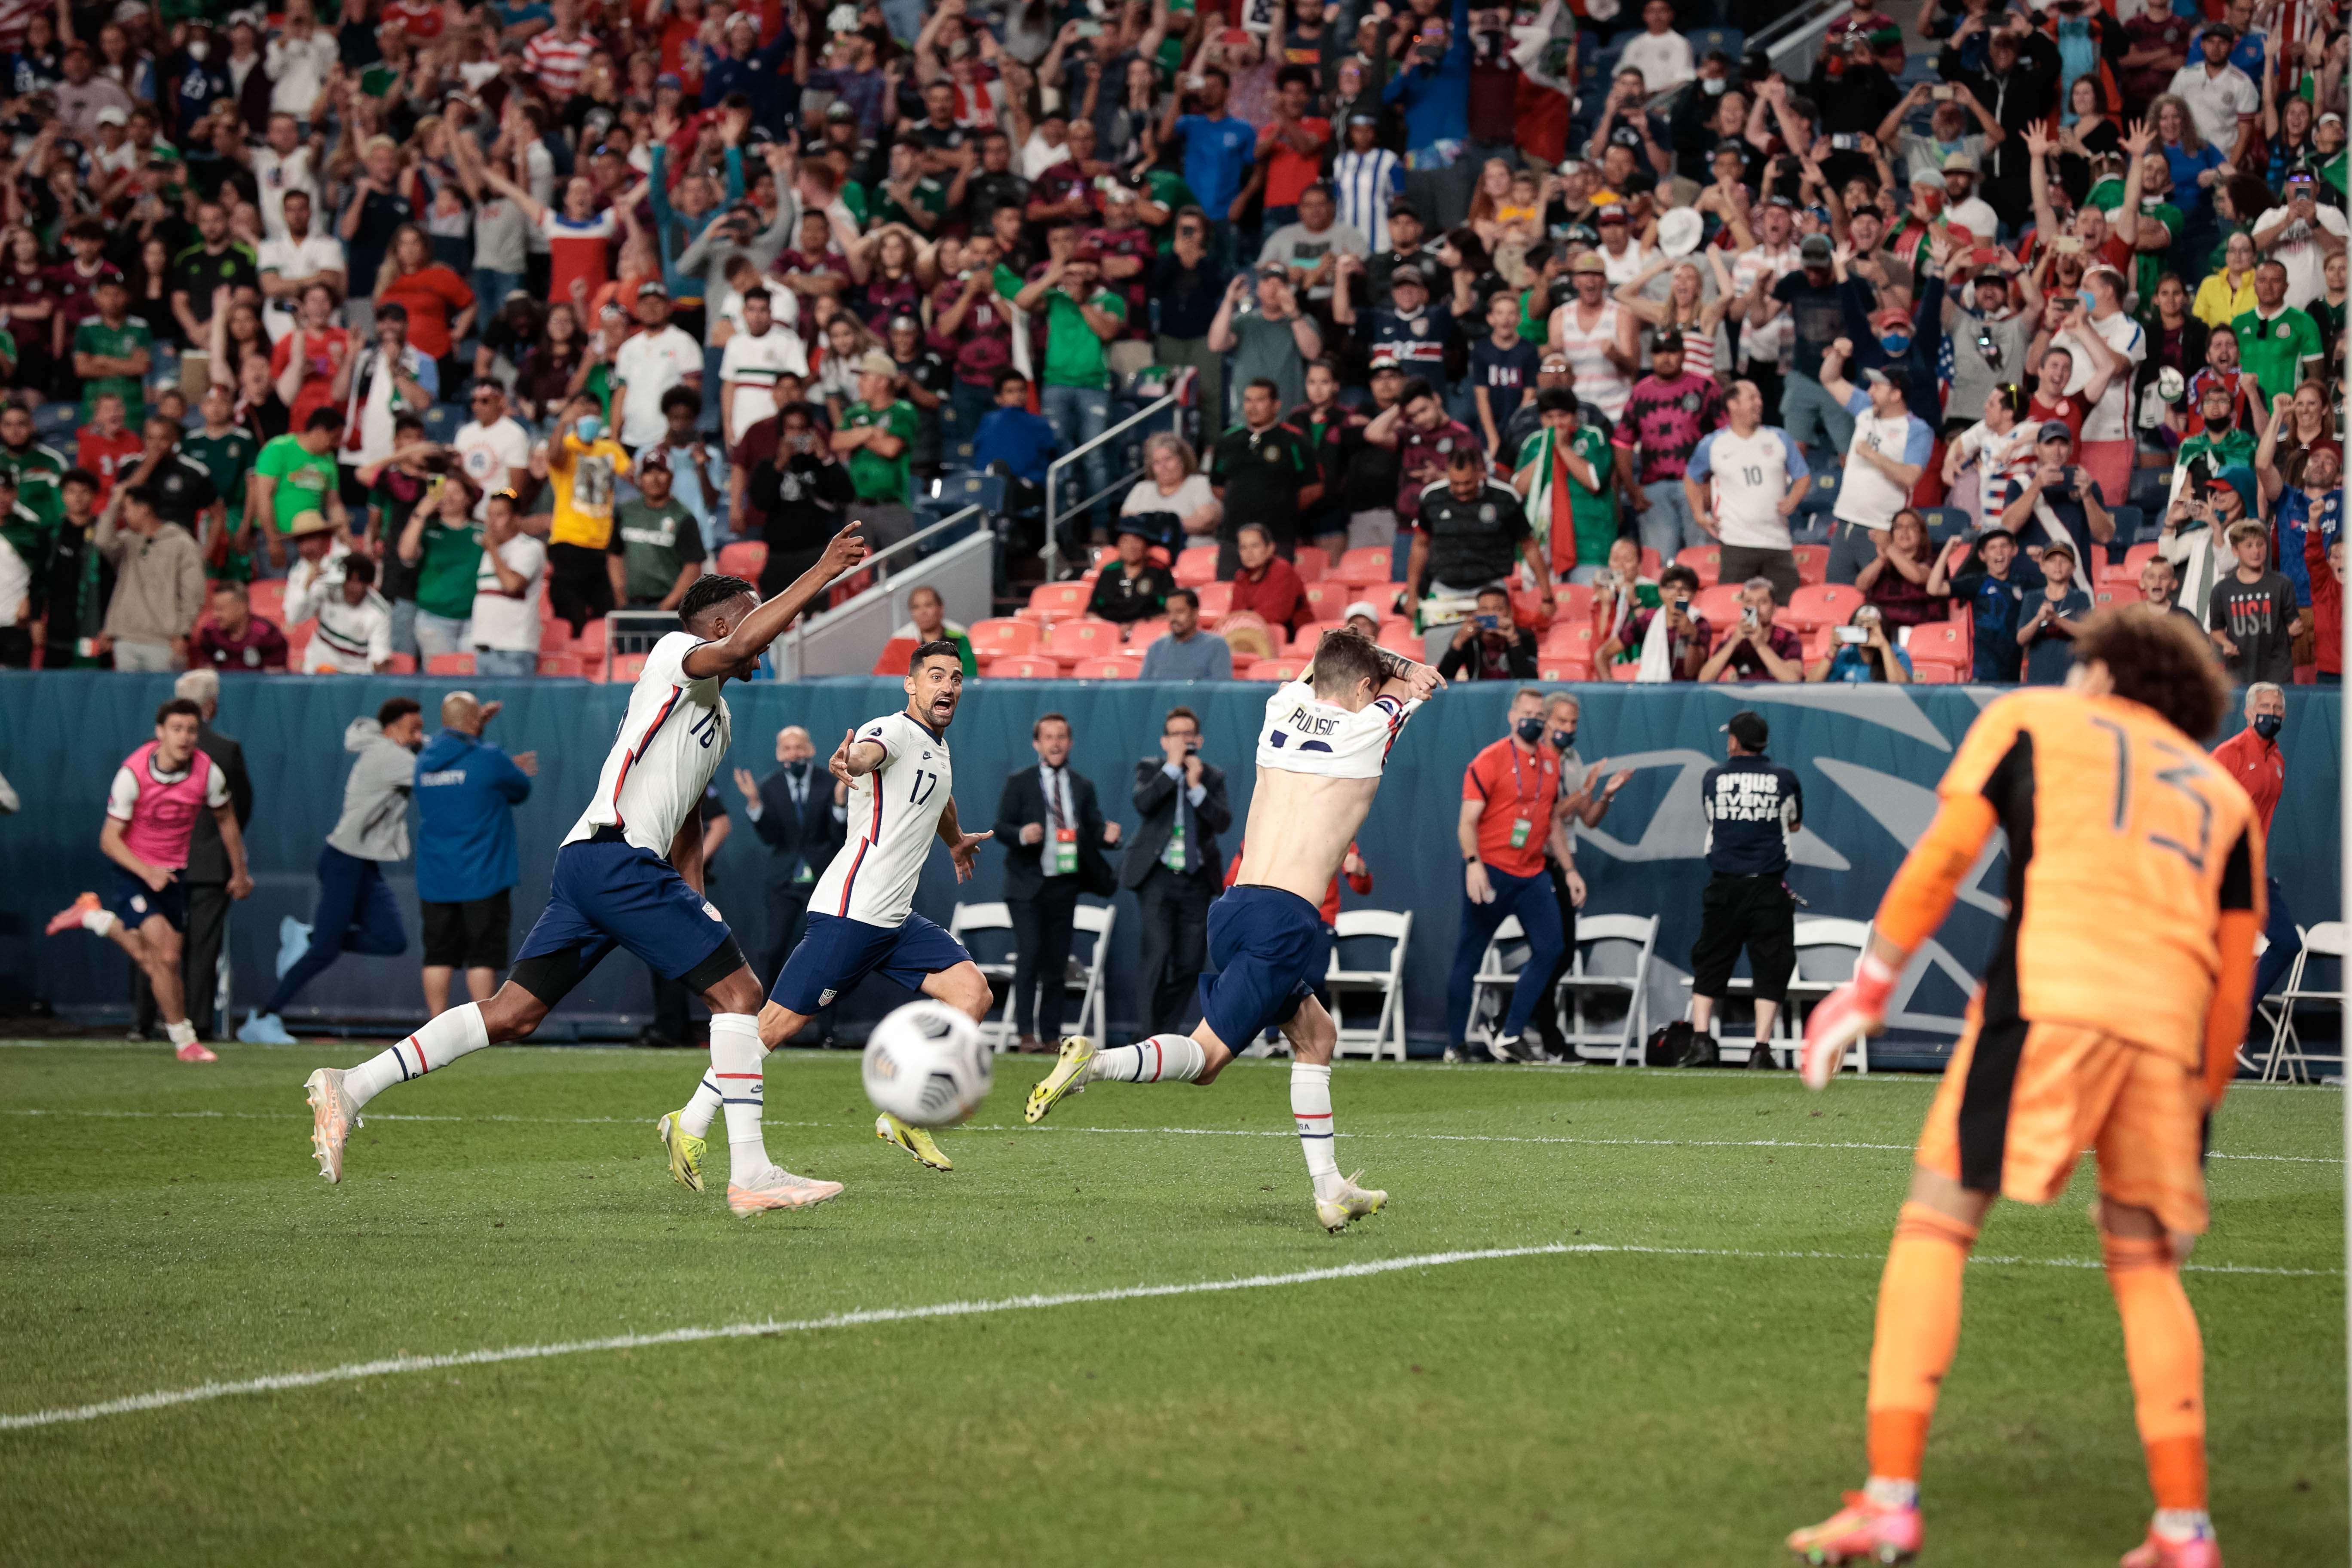 United States-Mexico match final marred by anti-gay chant, fans throwing objects on field